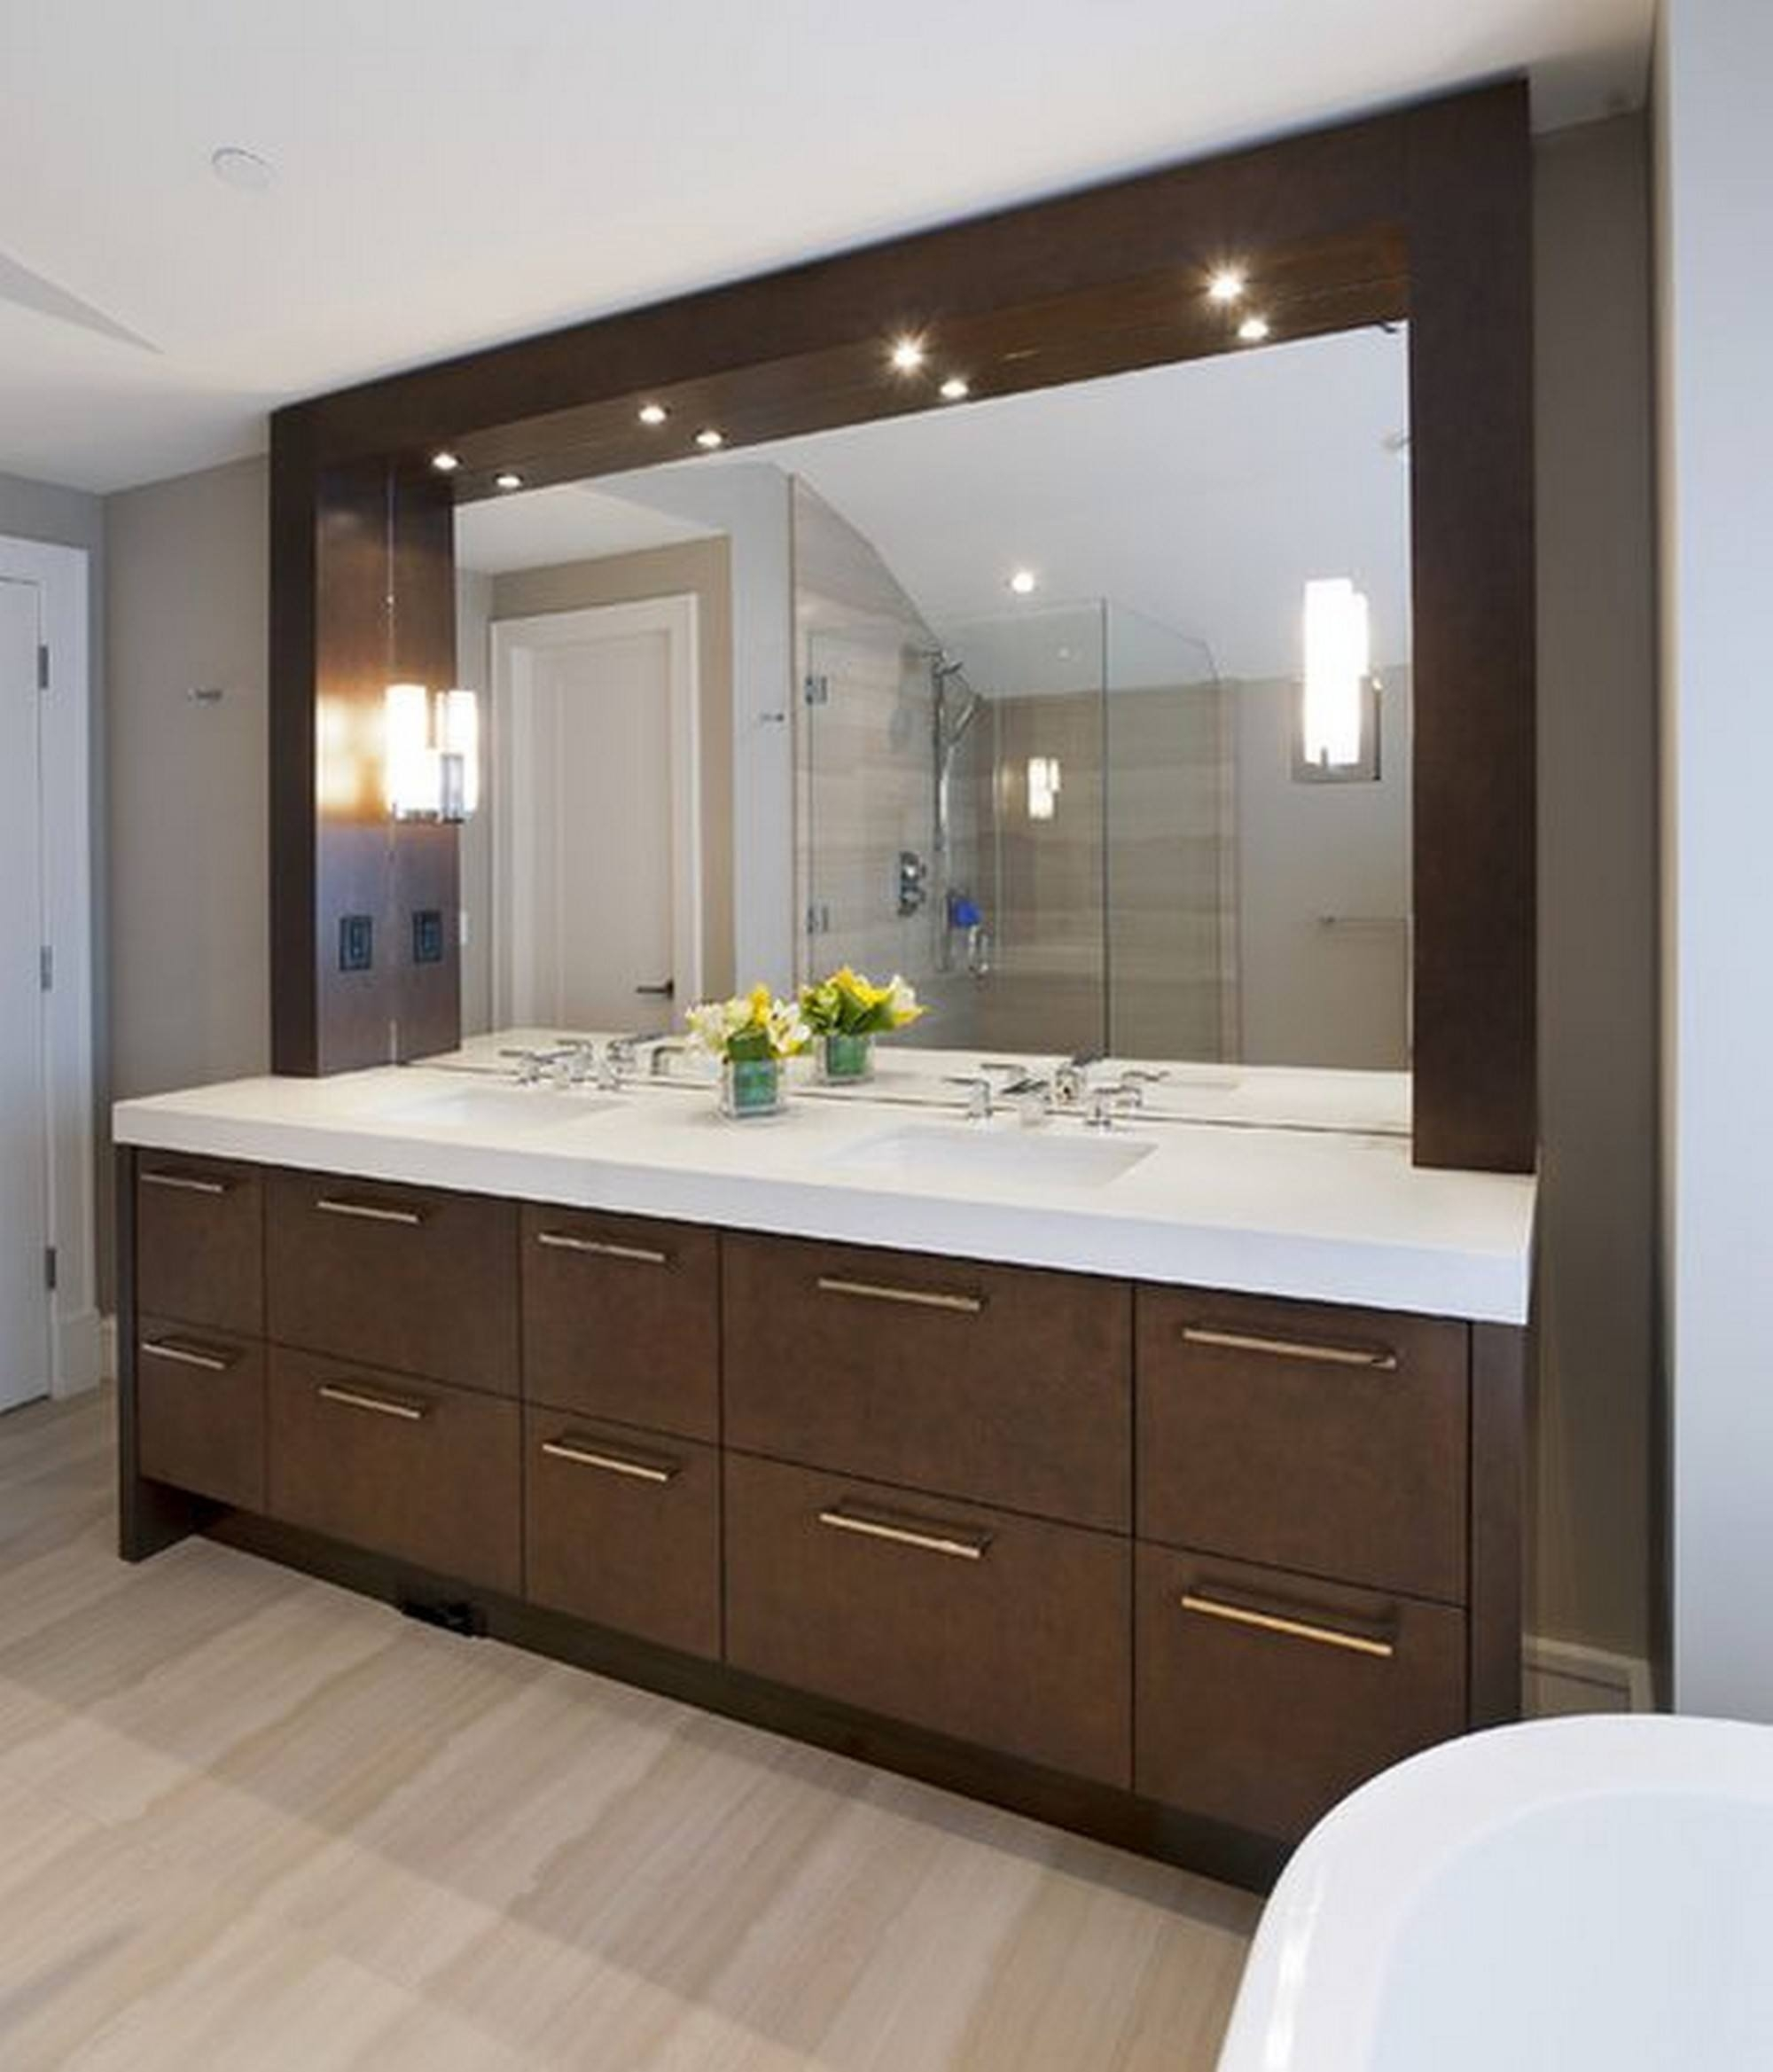 Permalink to Large Bathroom Vanity Mirrors